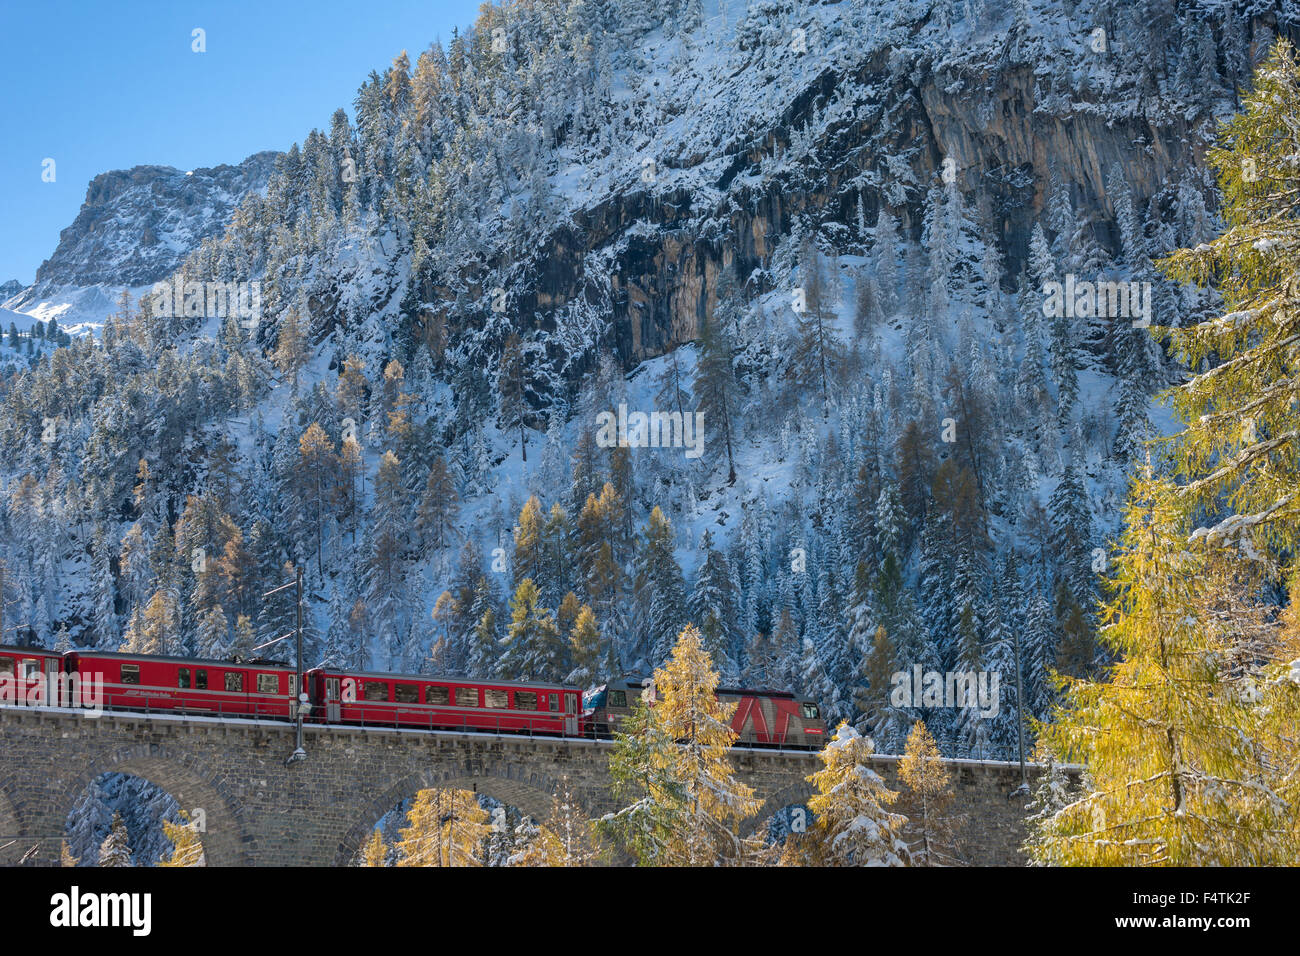 Albula railway, Albula, railroad, train, Switzerland, canton, Graubünden, Grisons, UNESCO, world cultural heritage, - Stock Image